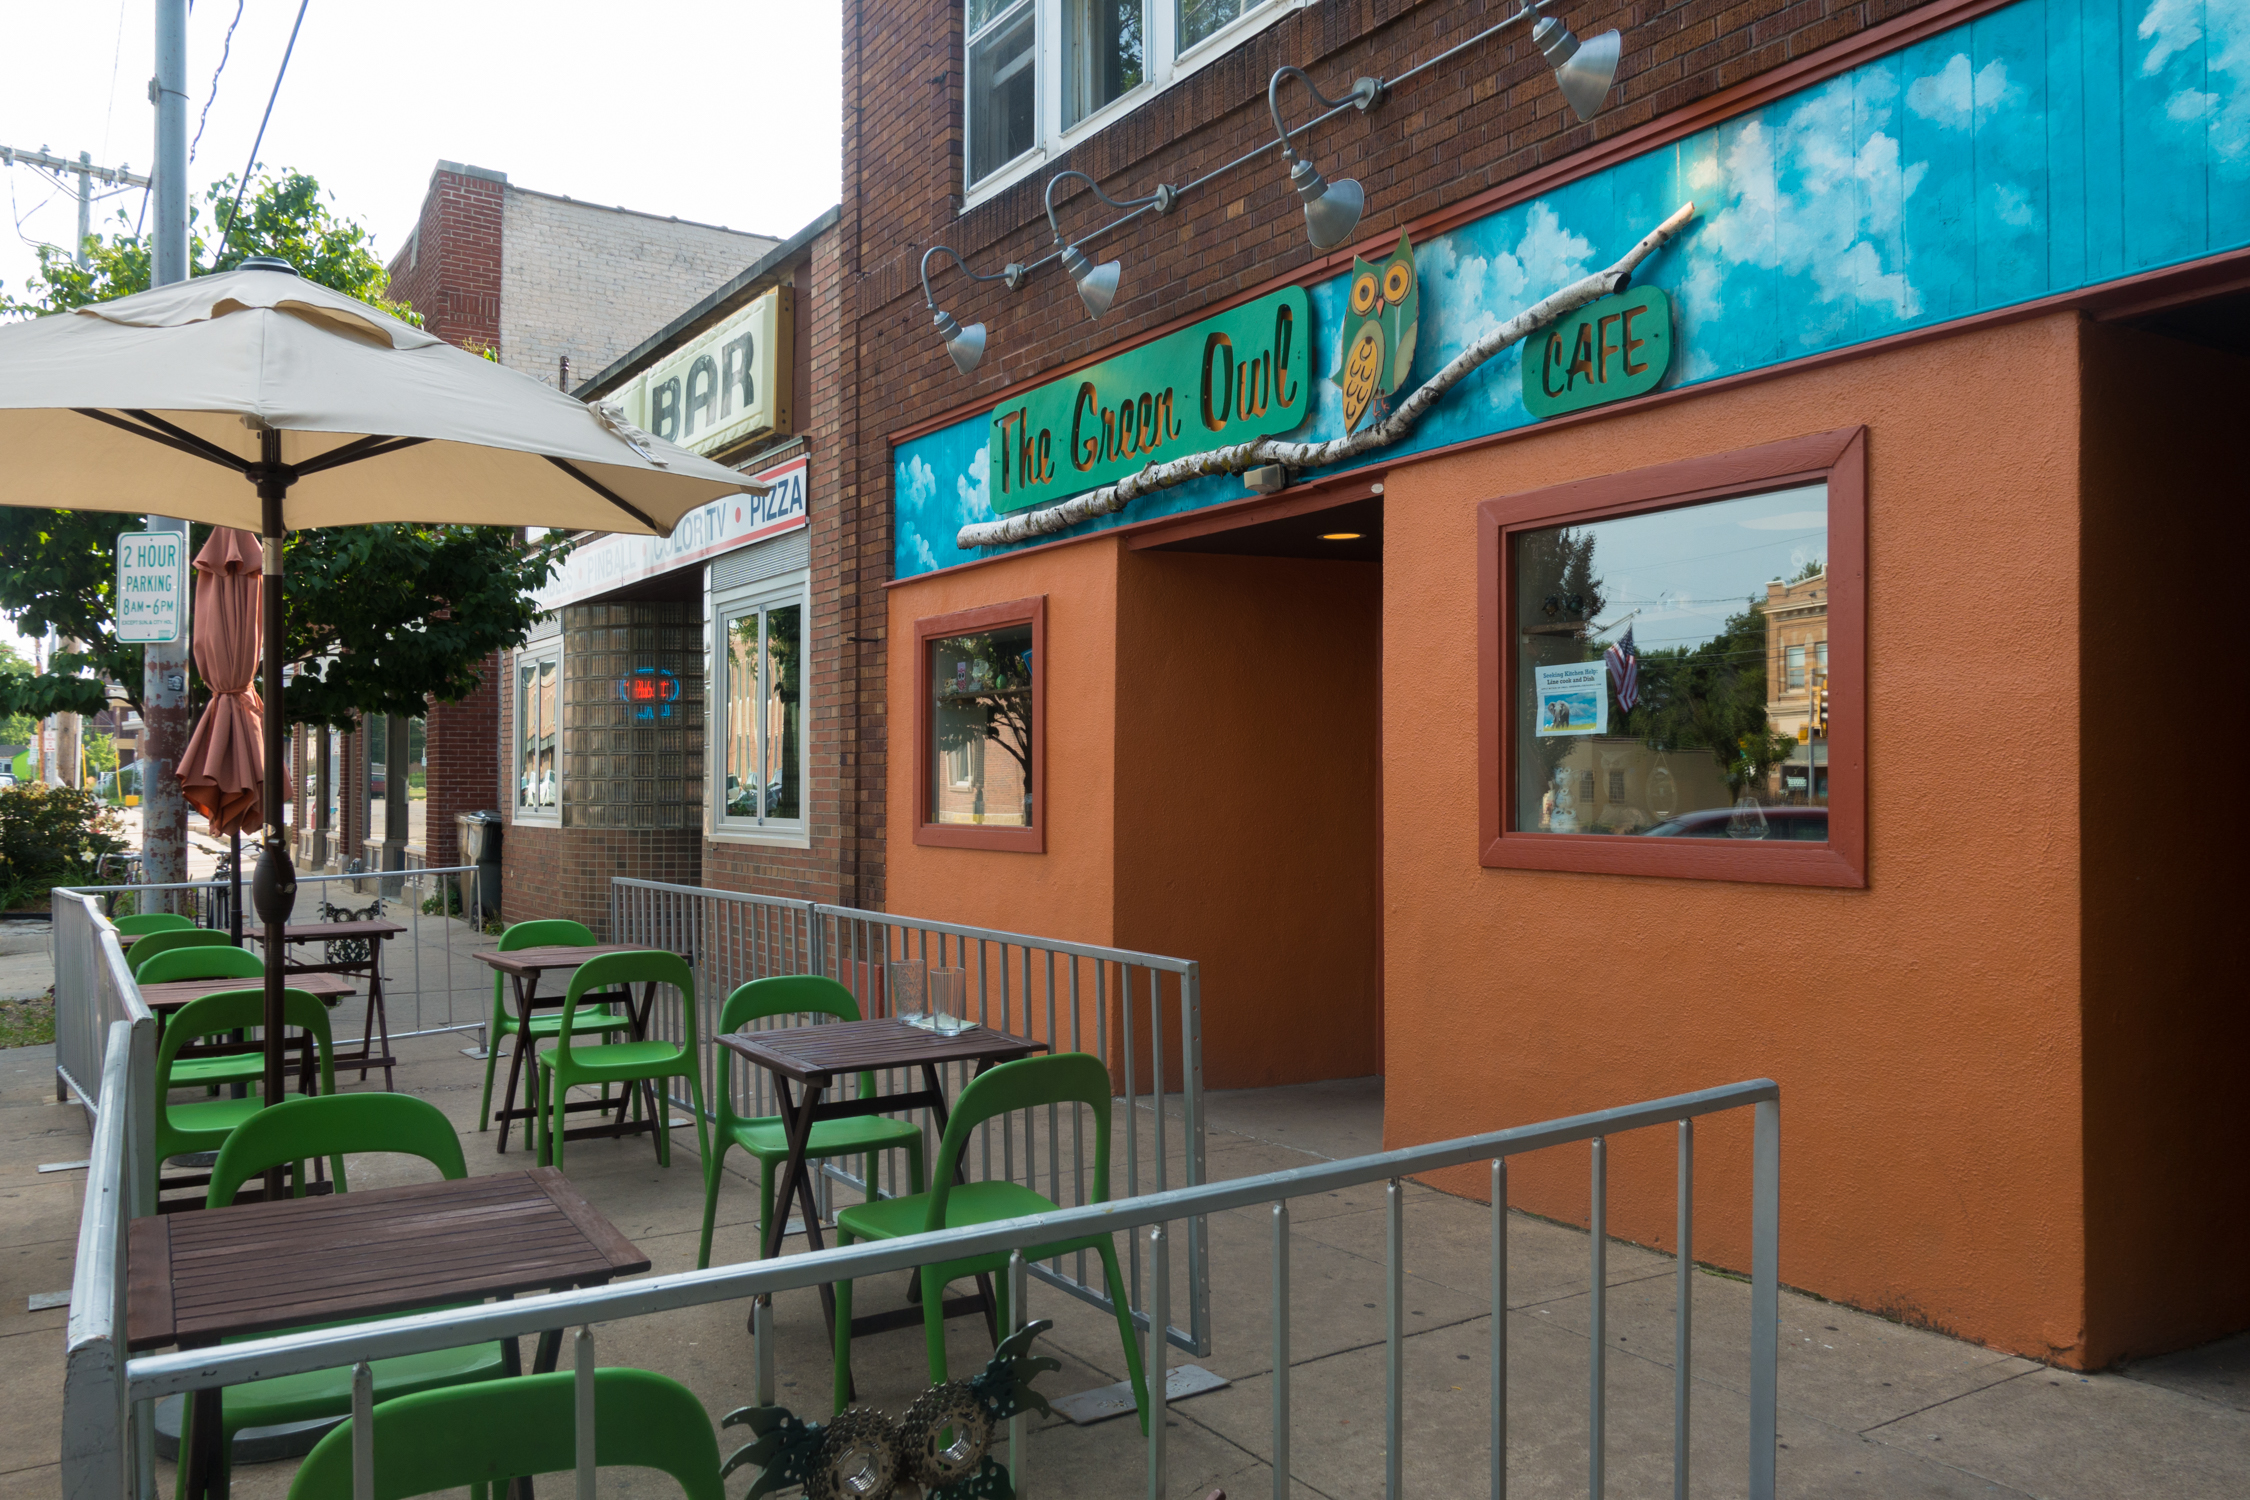 The Green Owl Cafe located in Madison, Wisconsin. #vegan #vegetarian #restaurant #food #Madison #Wisconsin